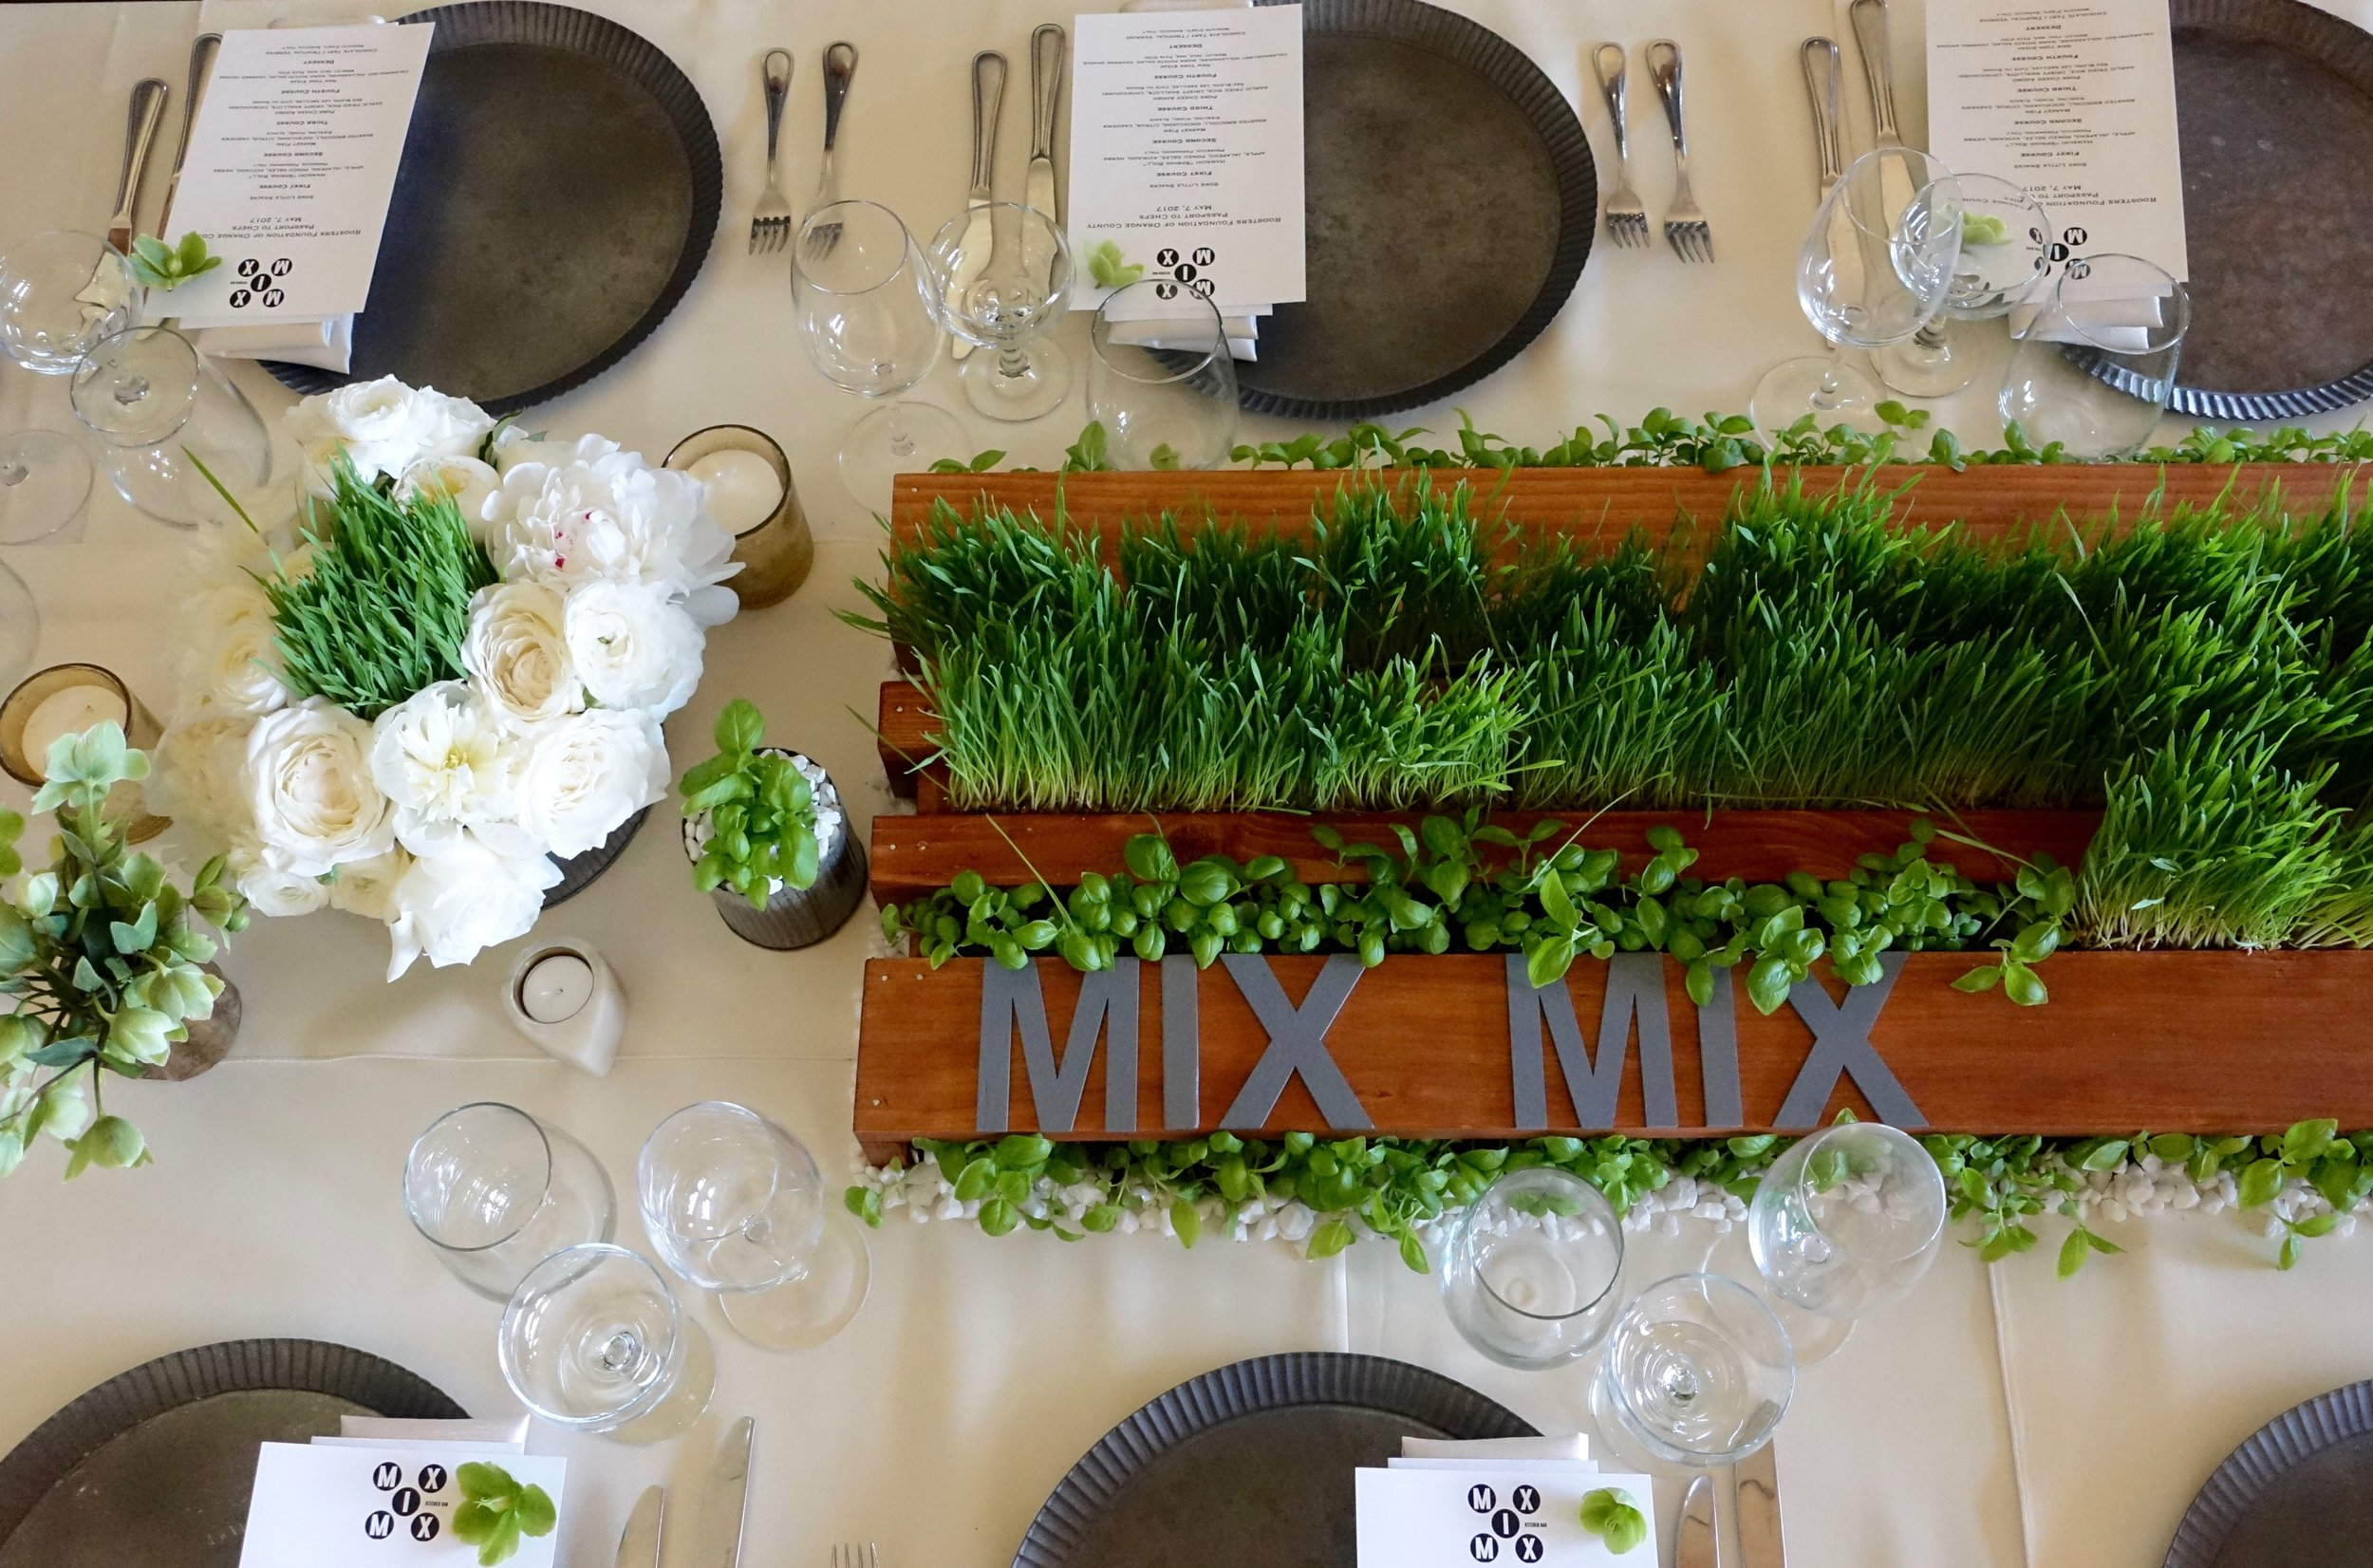 Orange-County-California-Modern-Minimalist-Tablescape-Mix-Mix-Kitchen-Bar-Wheat-Grass-Fence-Inspired.jpg